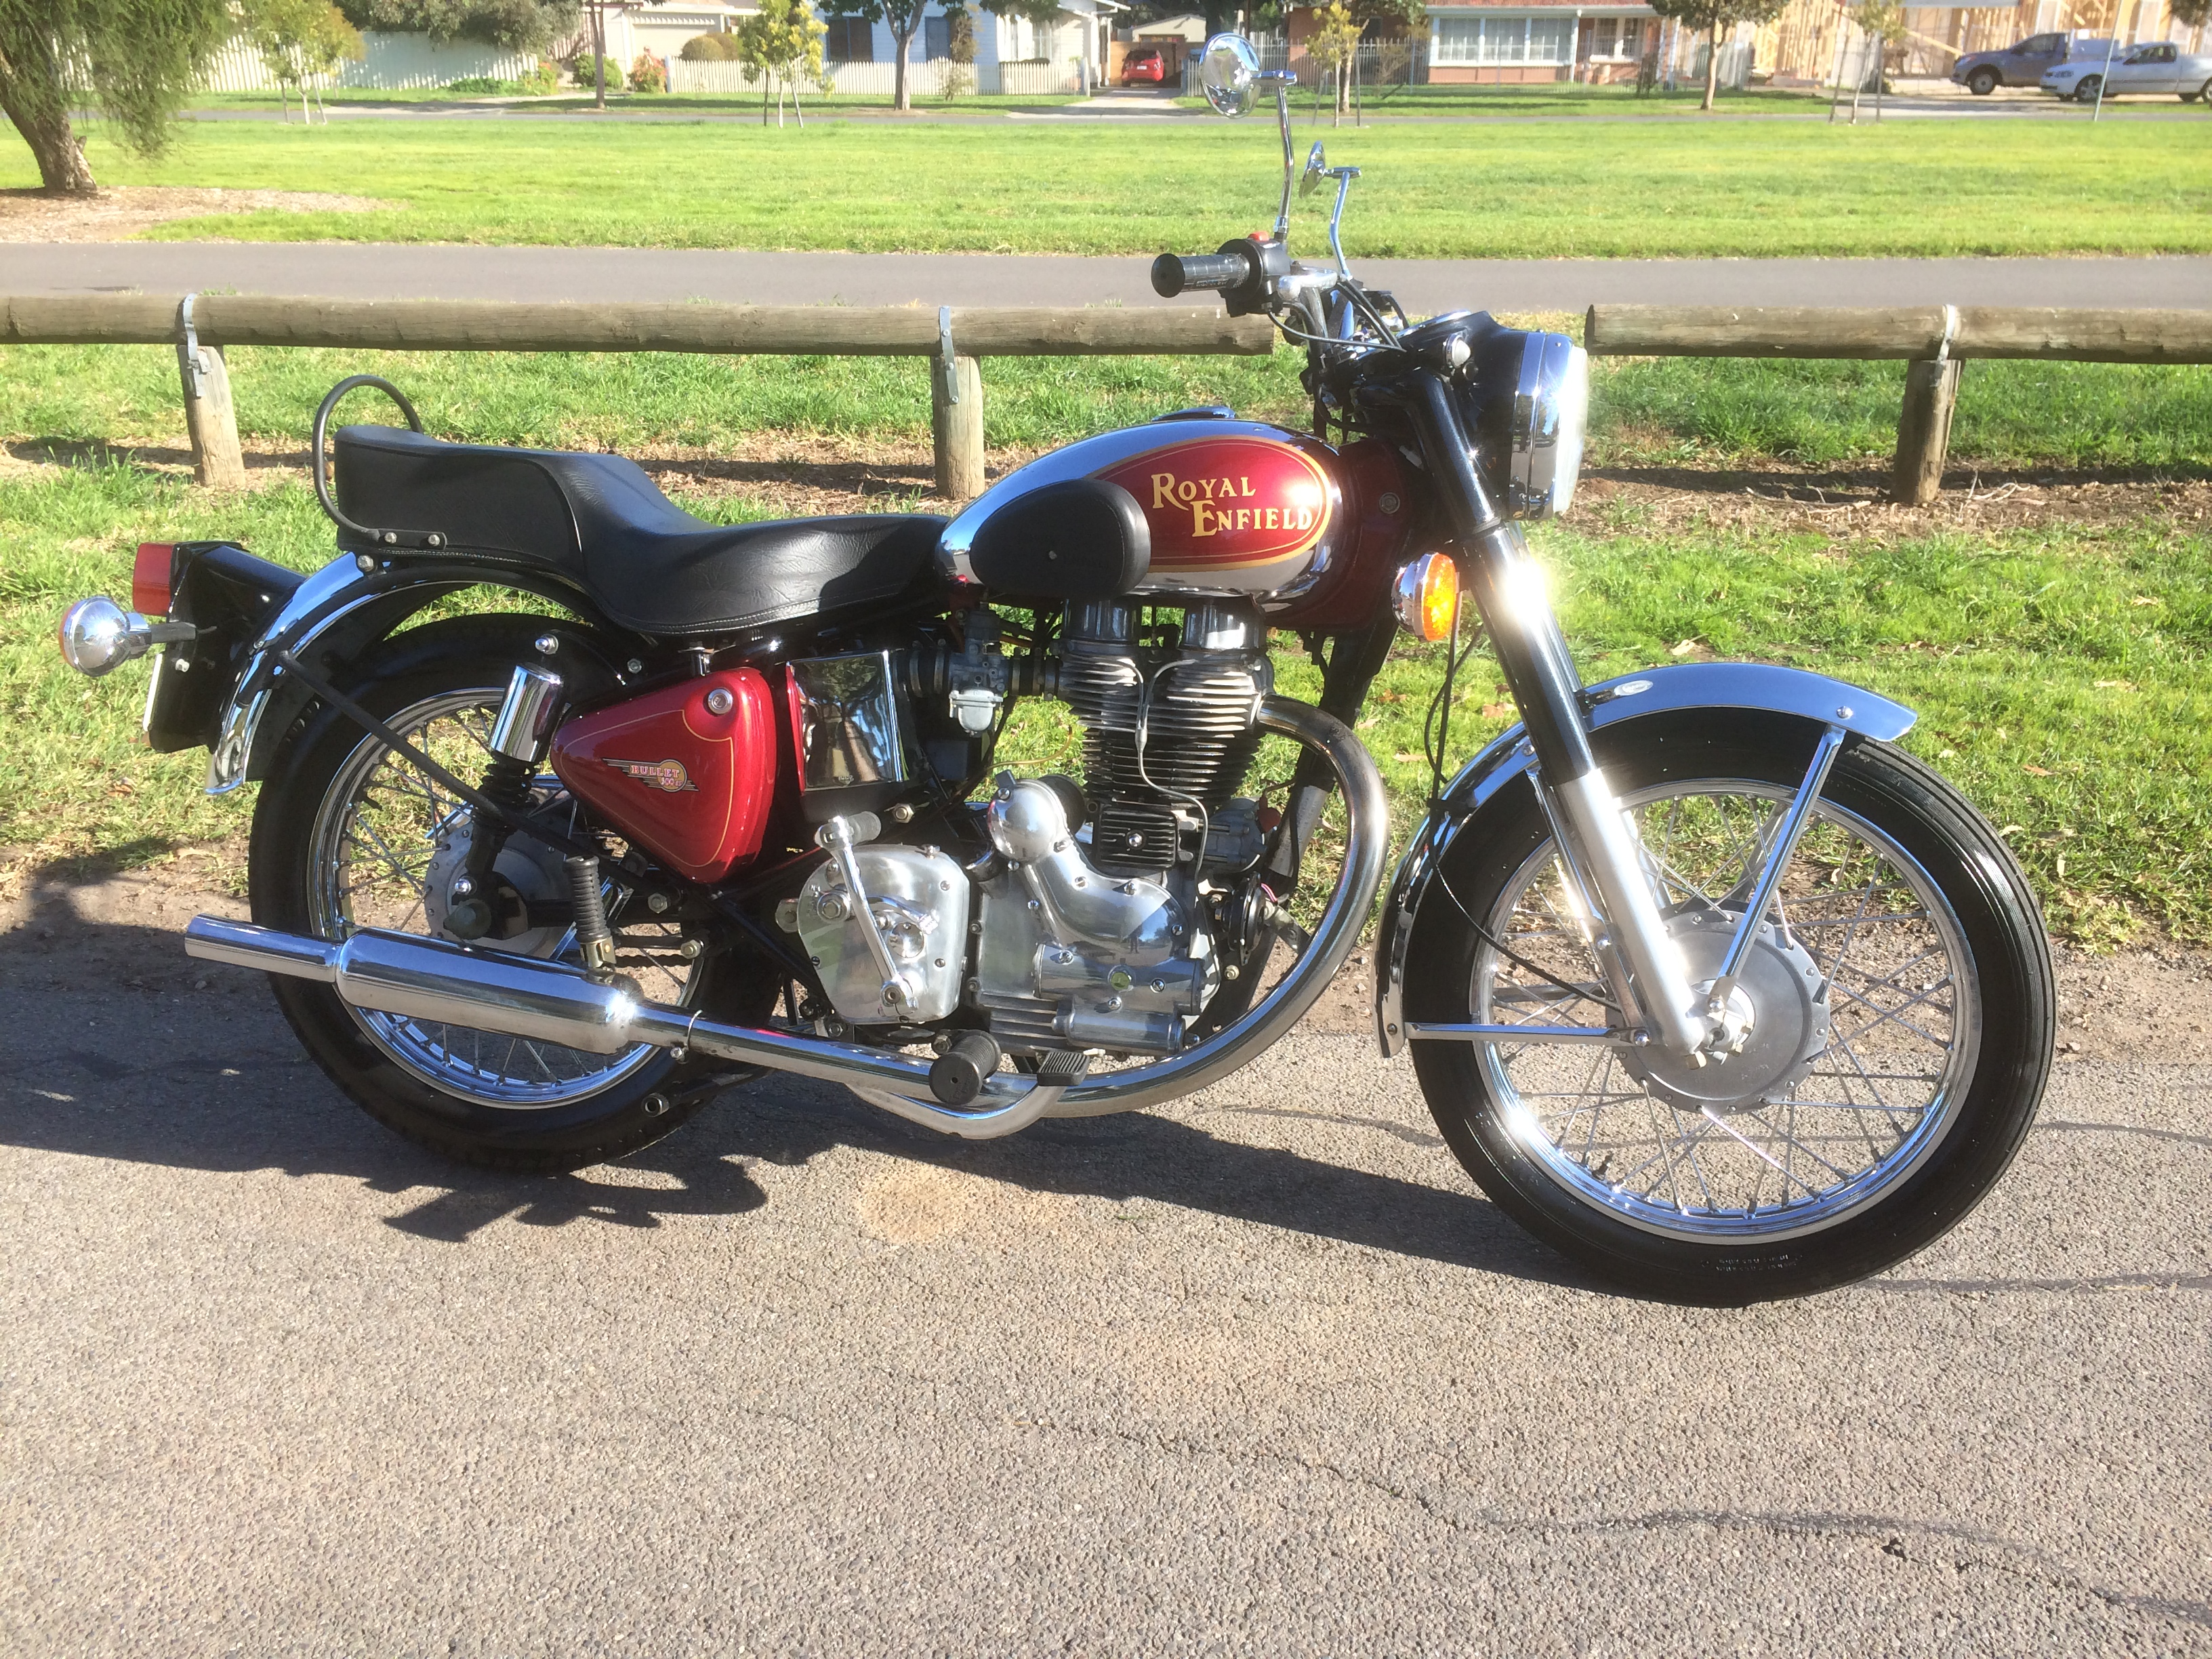 Royal Enfield Bullet 500 ES Deluxe 2007 images #123652